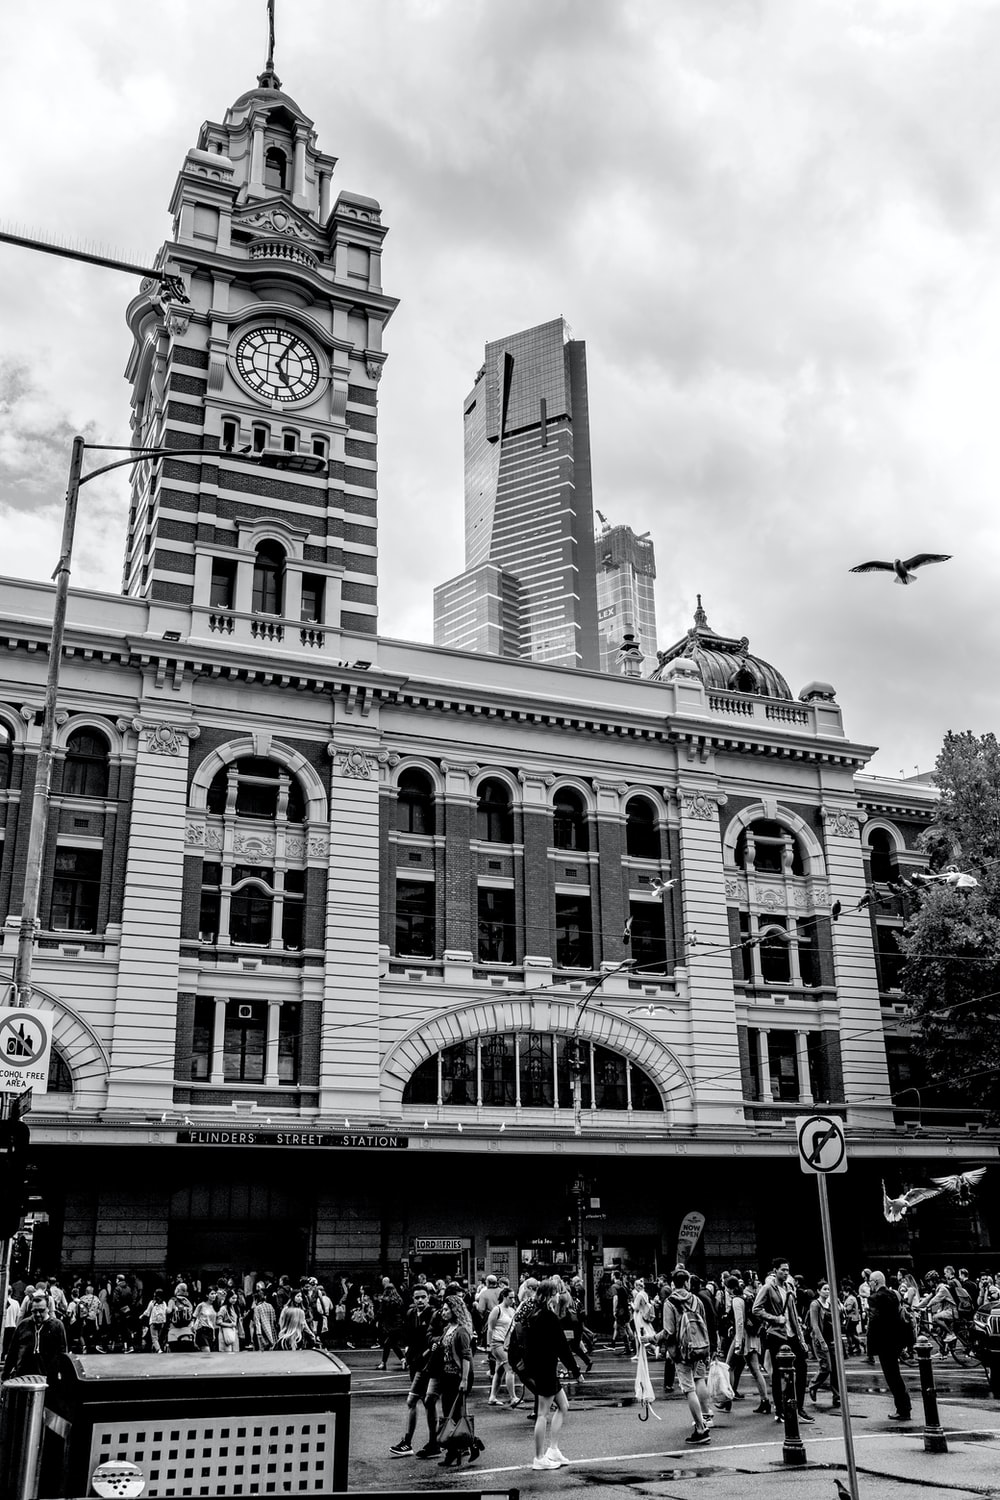 grayscale photo of concrete building with clock